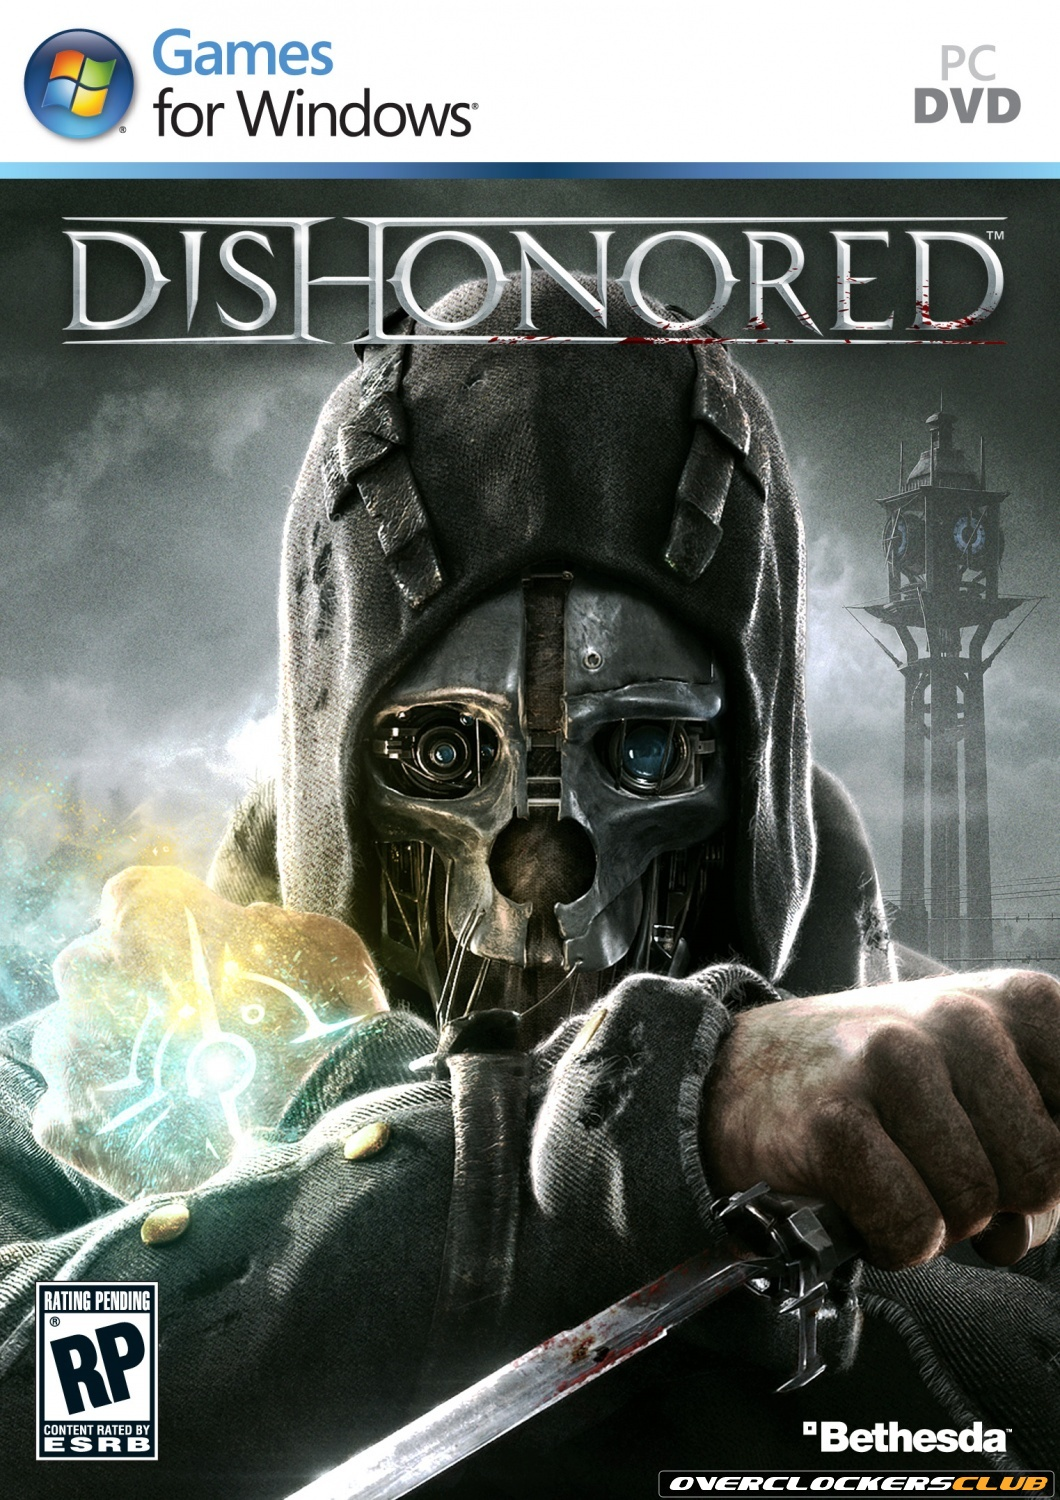 Dishonored's Awe-Inspiring Gameplay Wows Reviewers